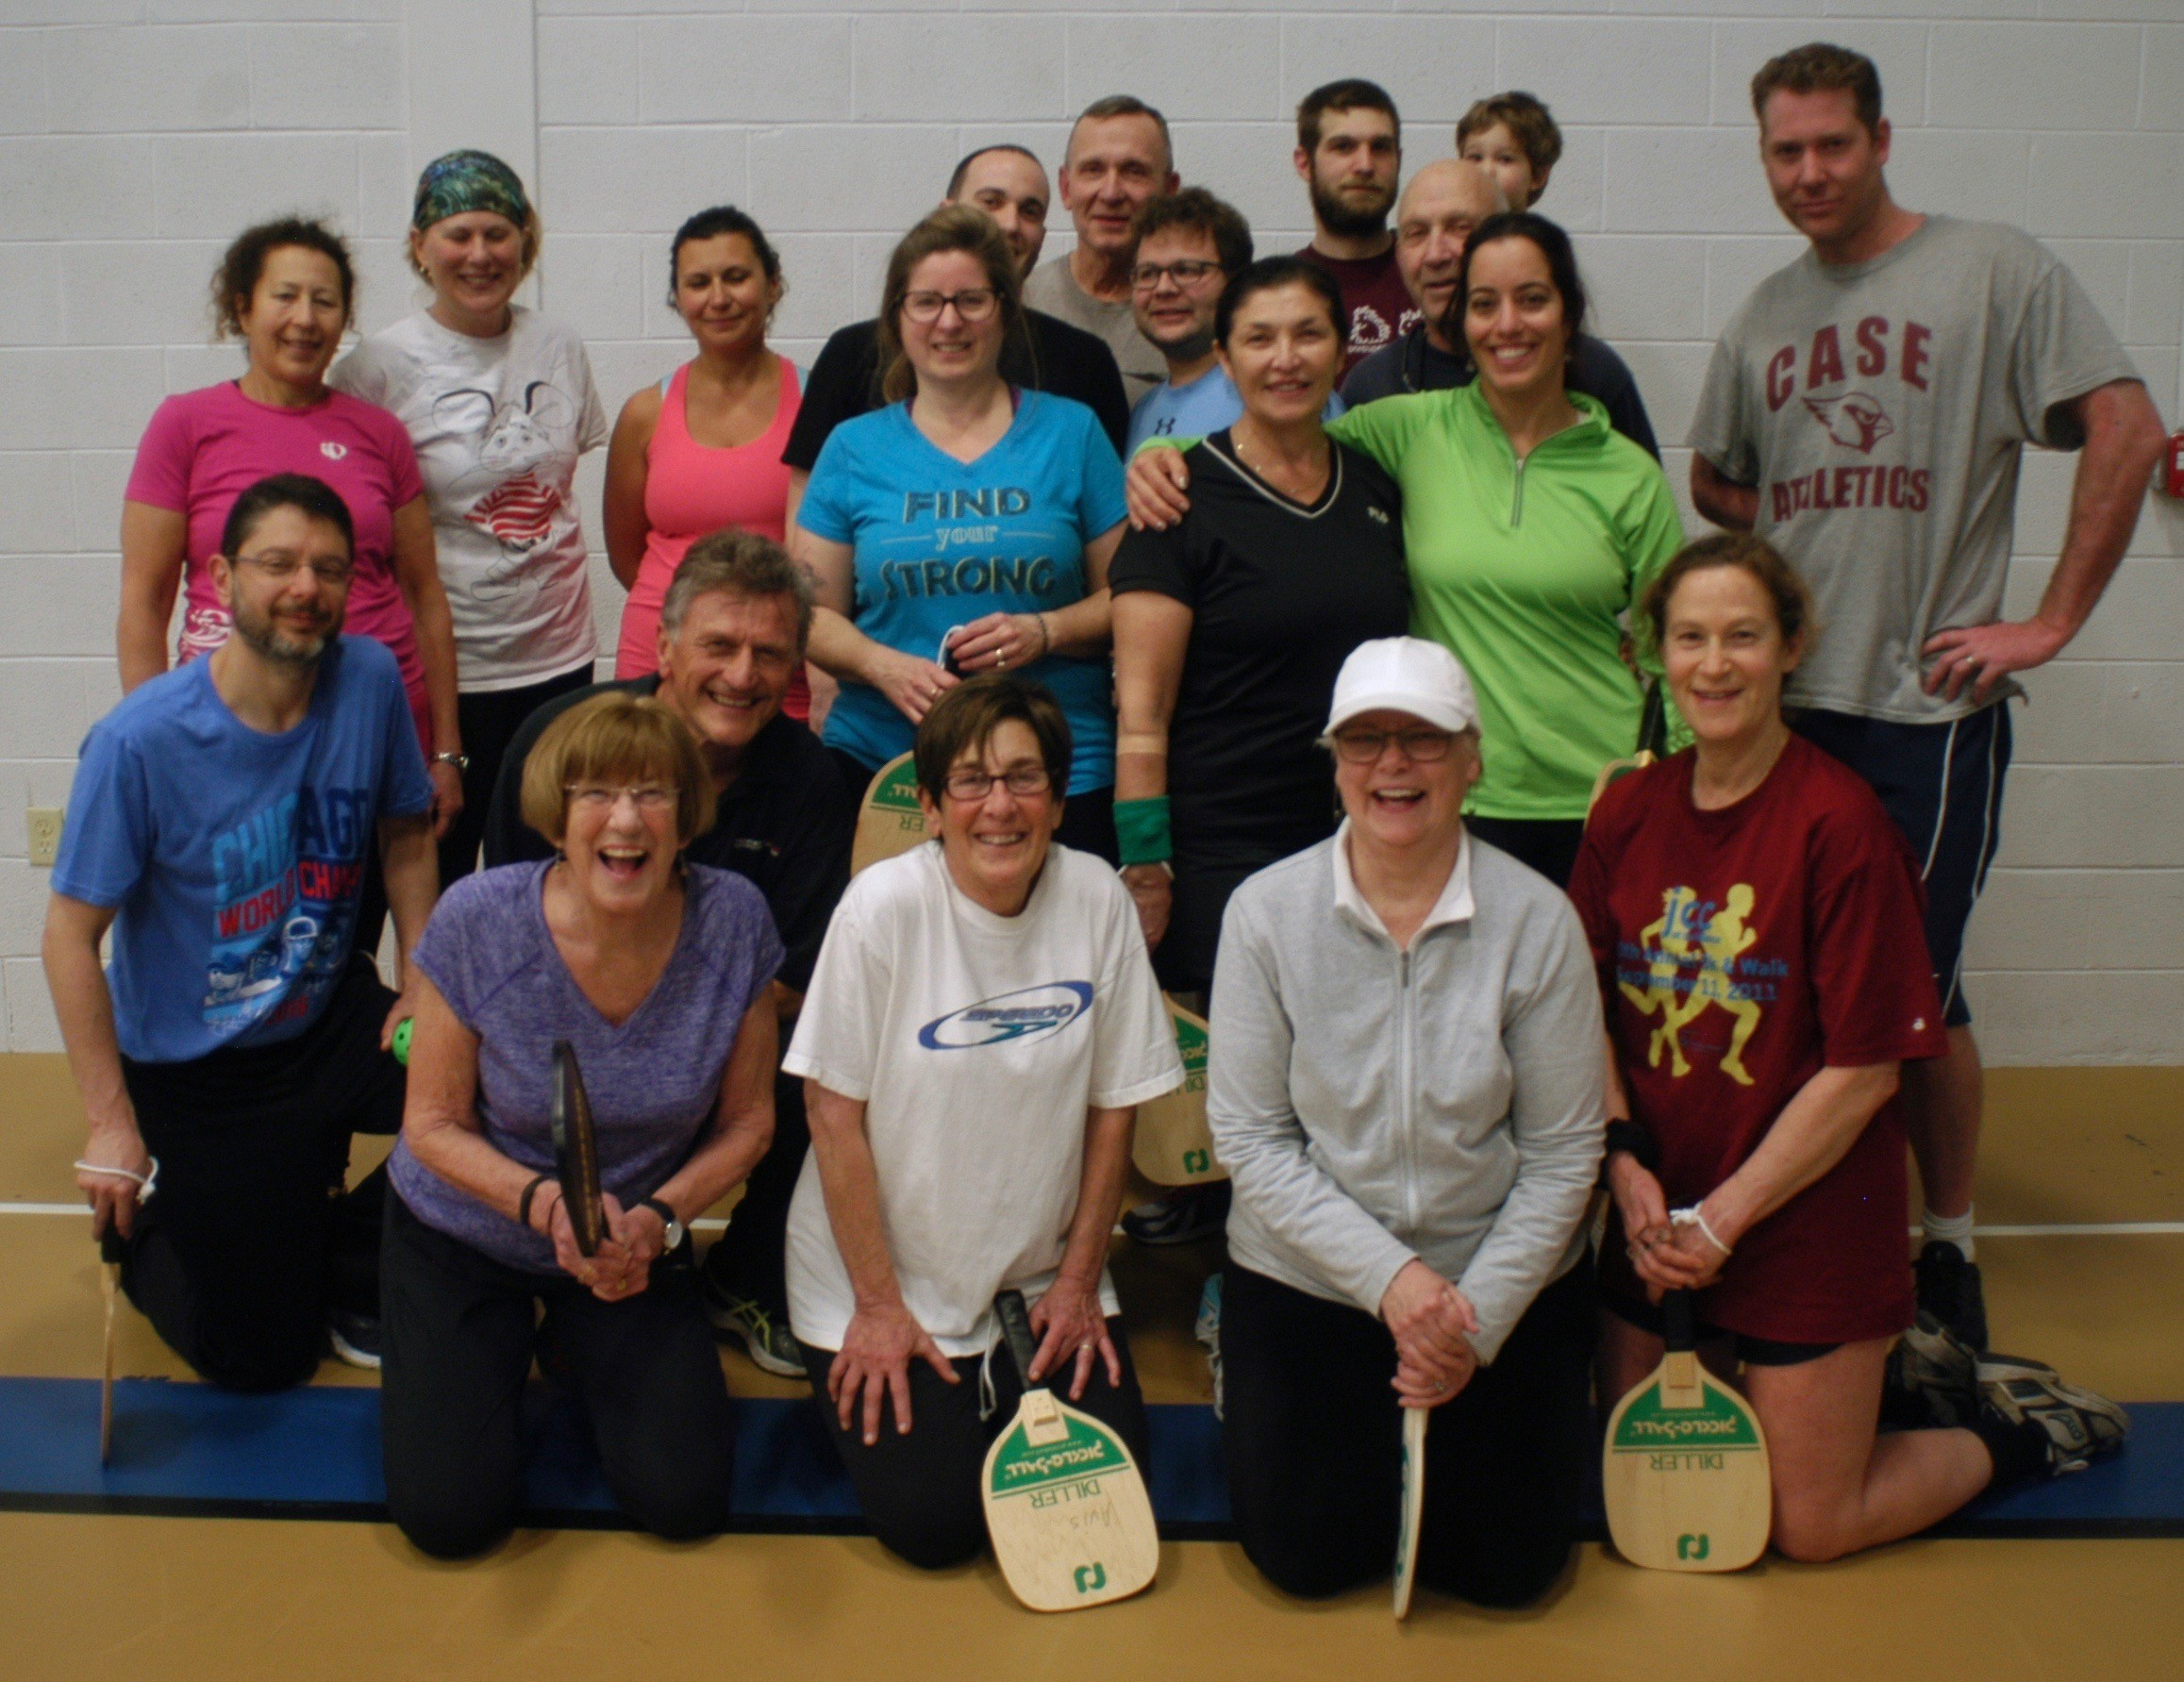 Players enjoy and evening of friendly paddleball games with seven teams of two or three players in a round robin competition.